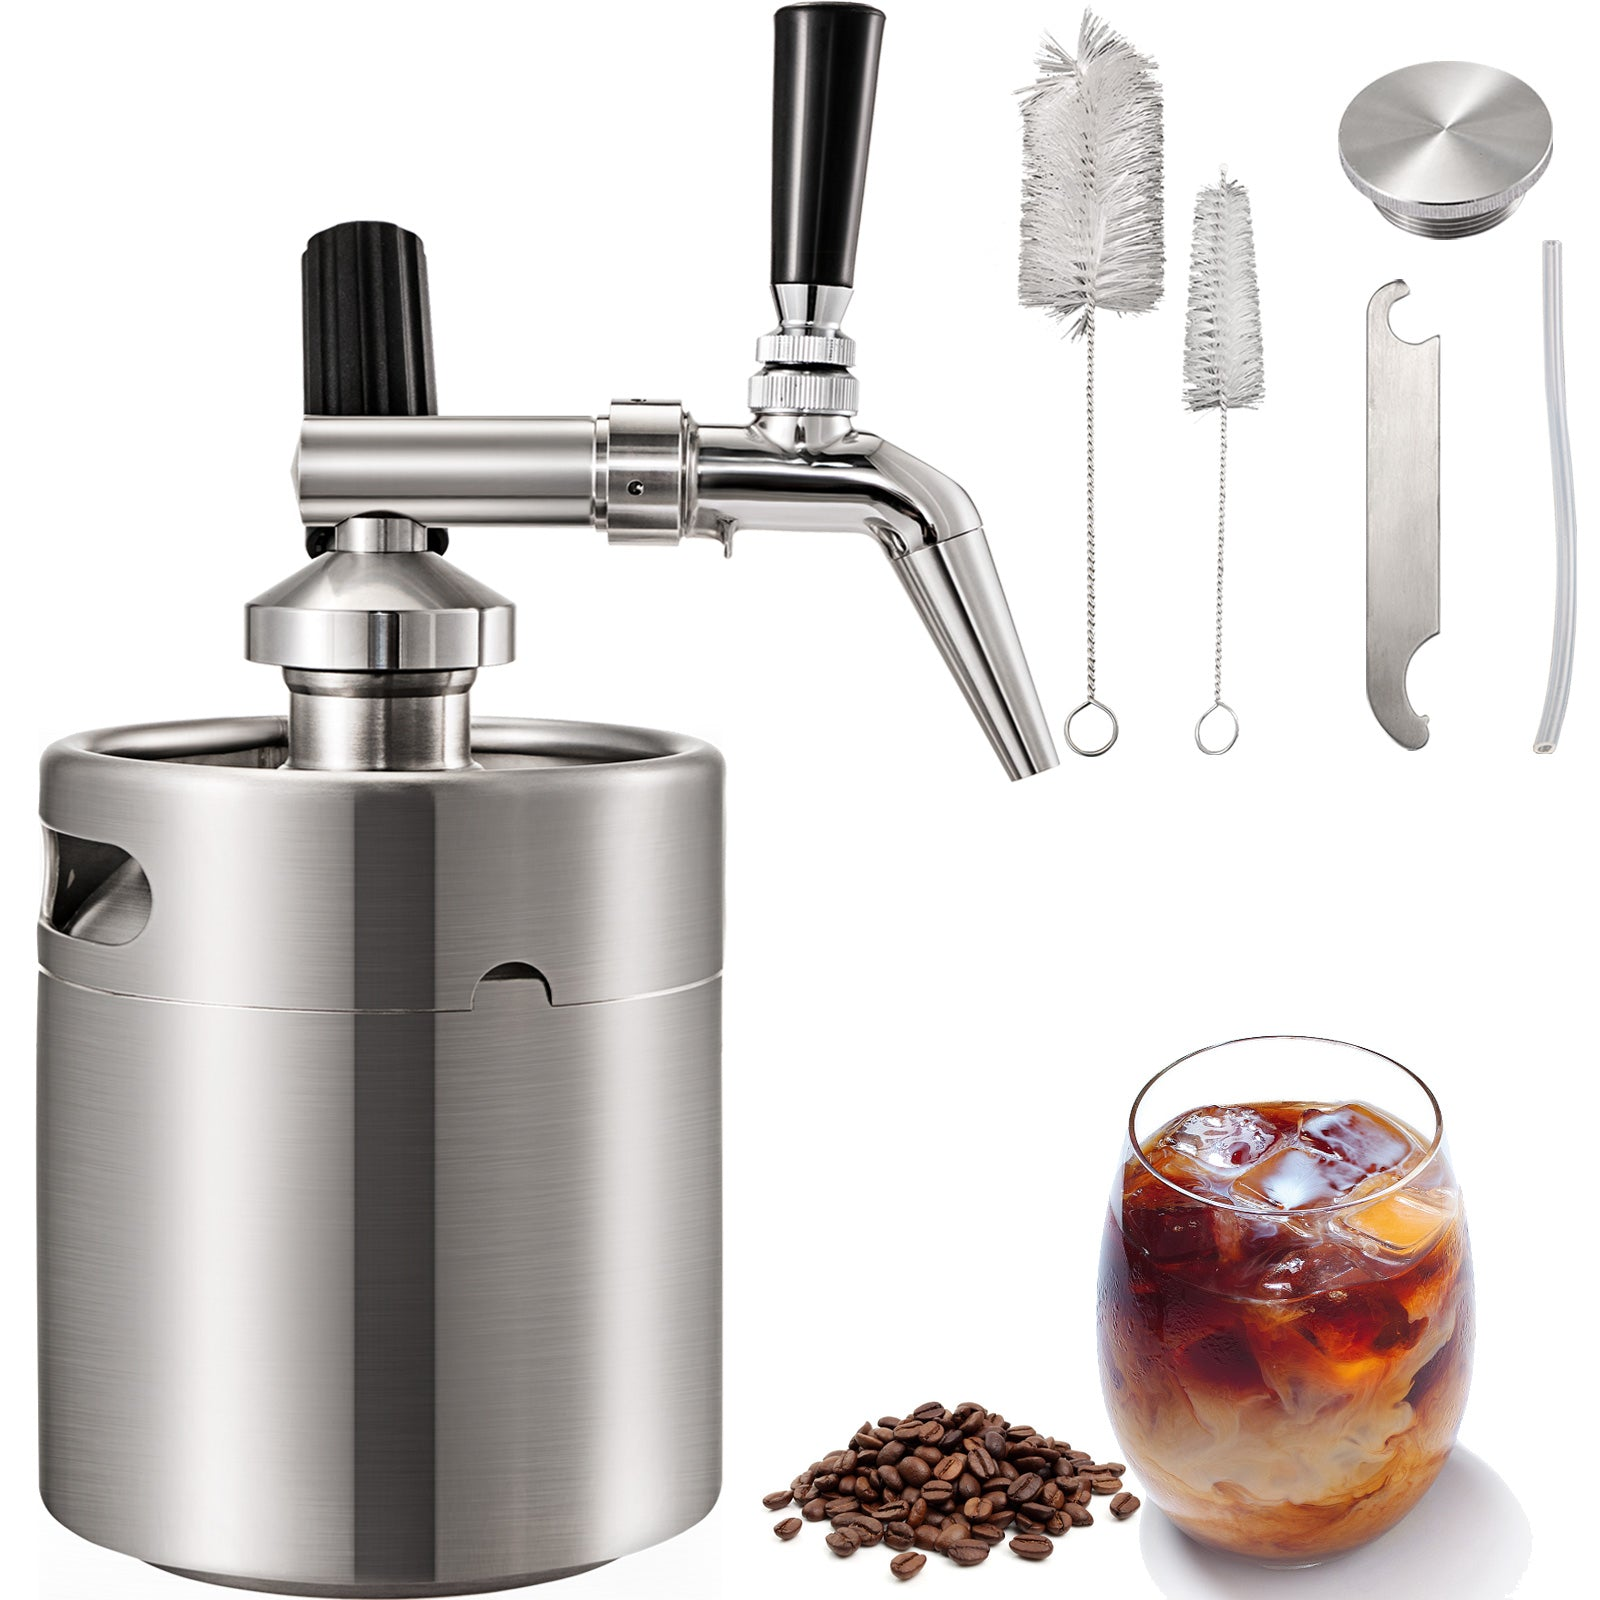 Cafetière à Piston Inoxydable Cold Brew 5000ml Café Thé Extraction à Froid